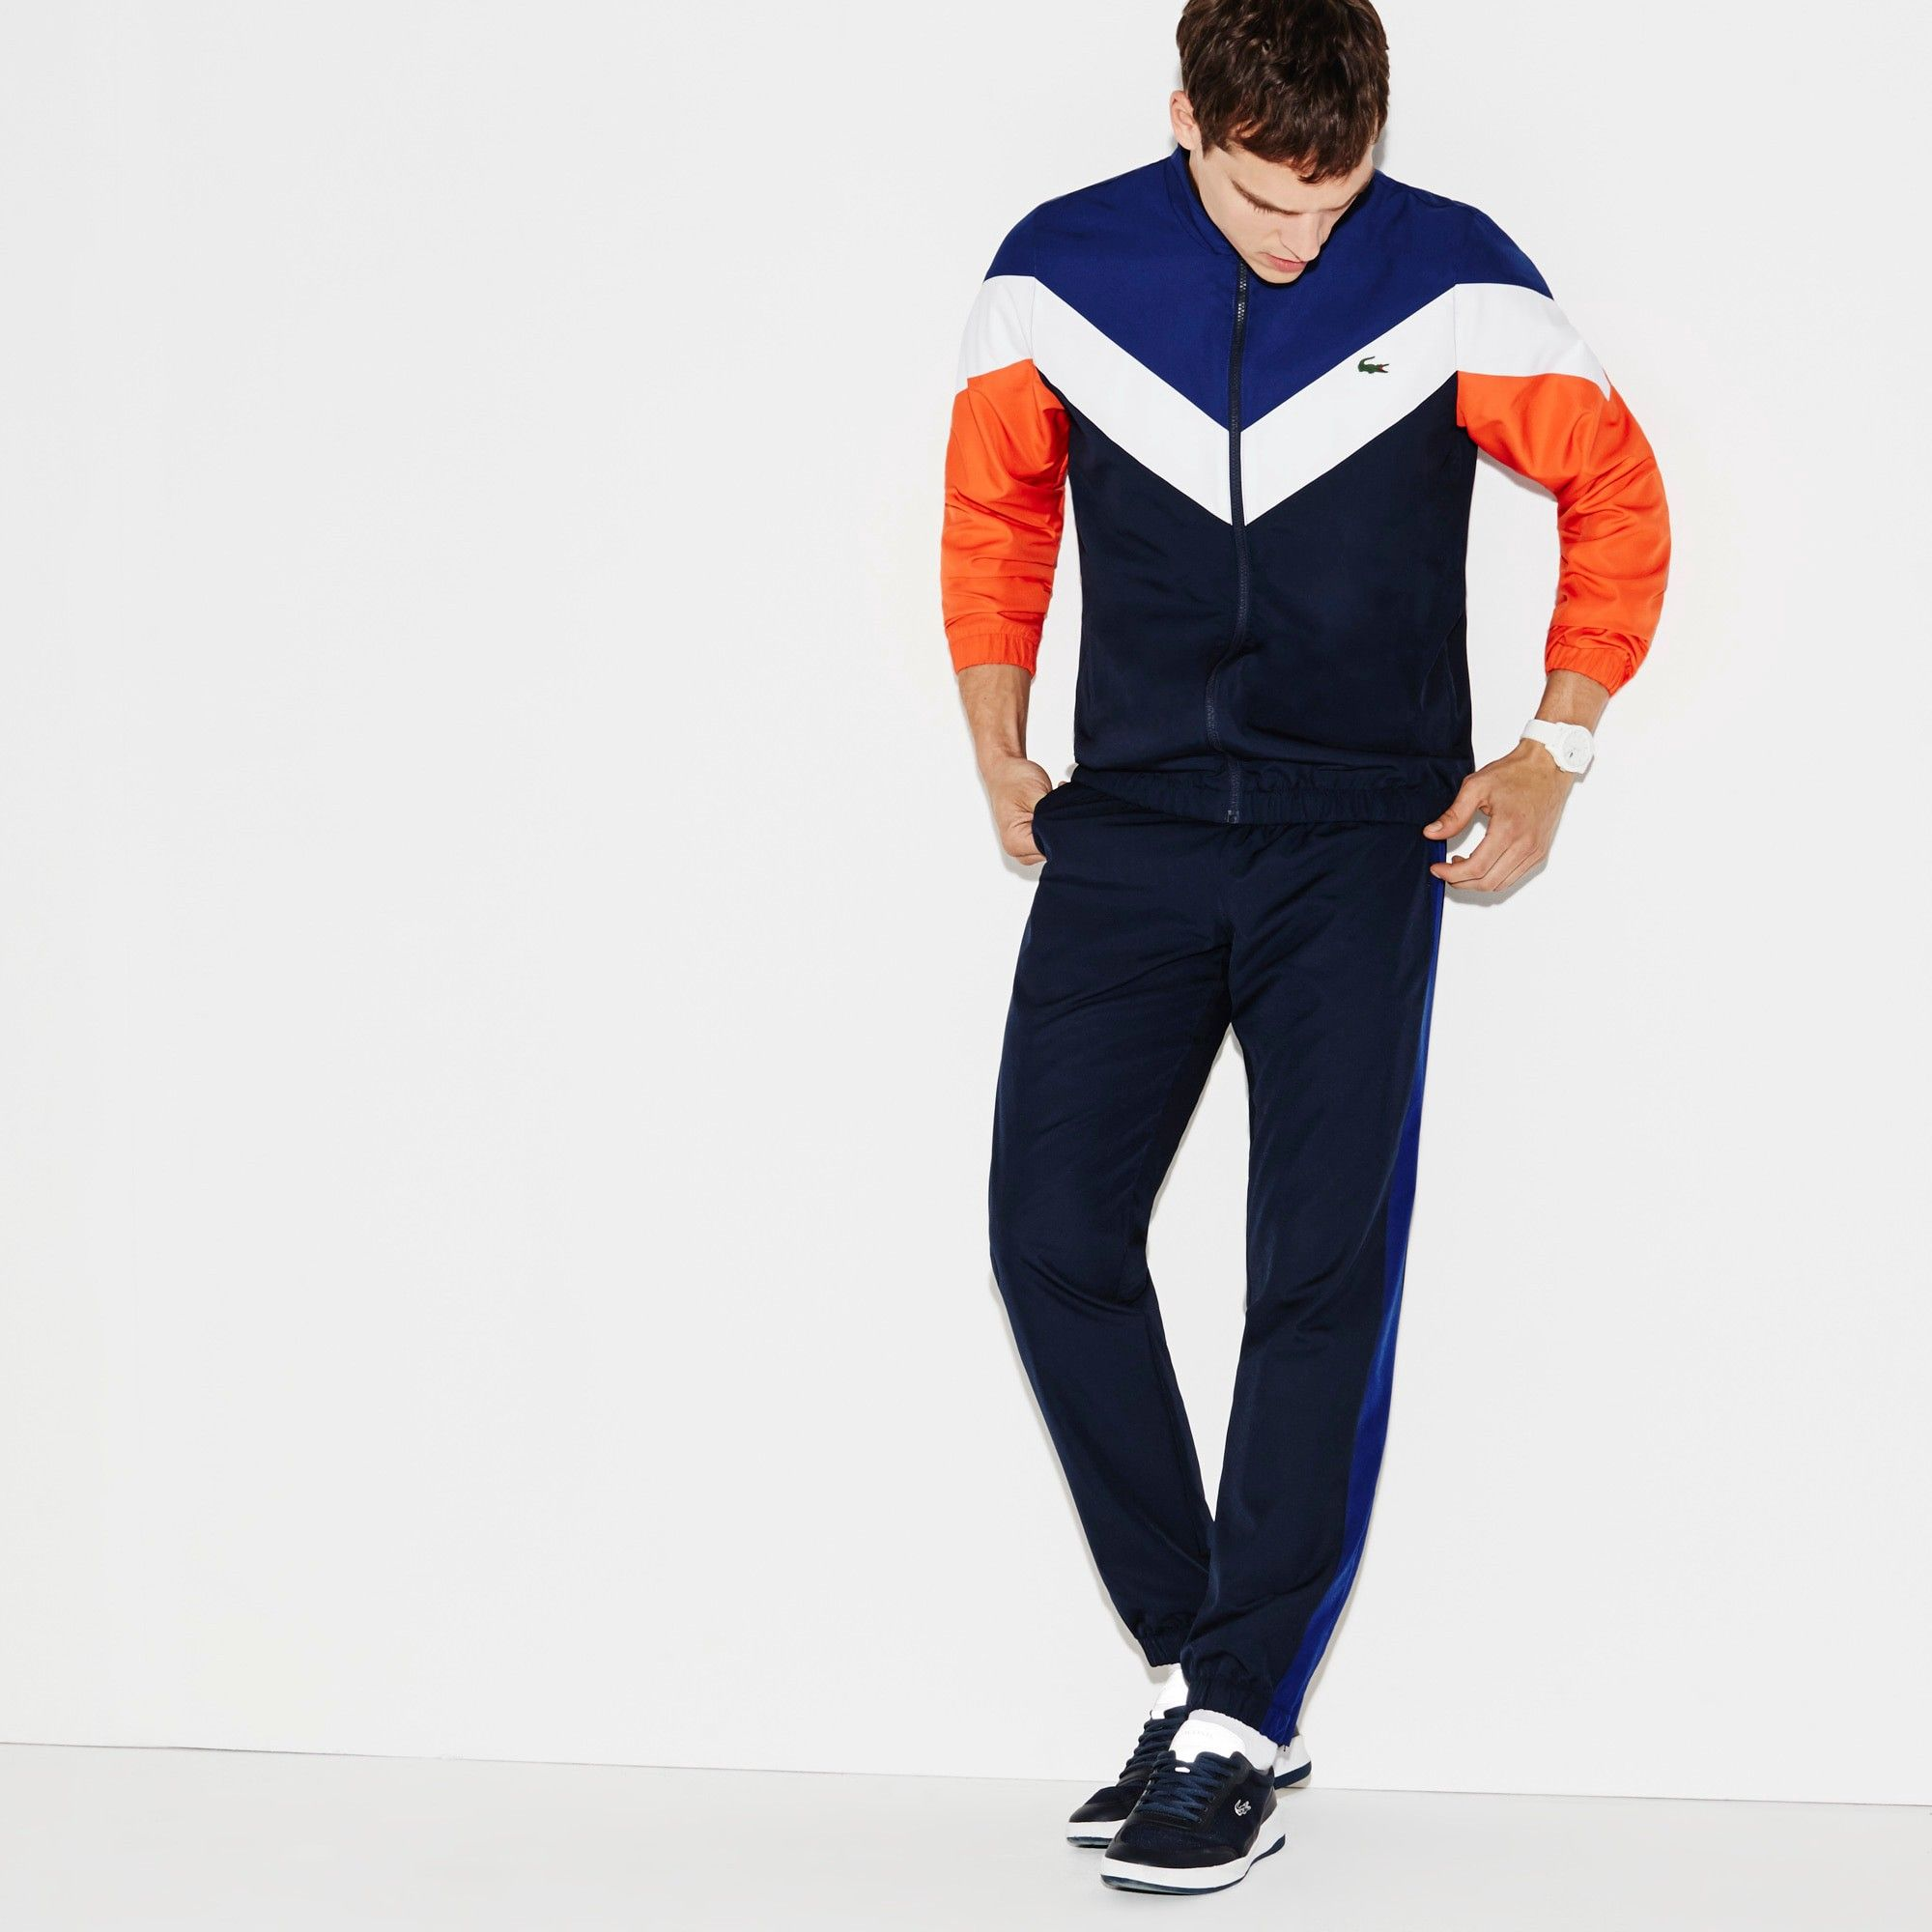 f3eaae4ffc LACOSTE Men's Lacoste SPORT Tennis Colorblock Tracksuit - navy blue ...